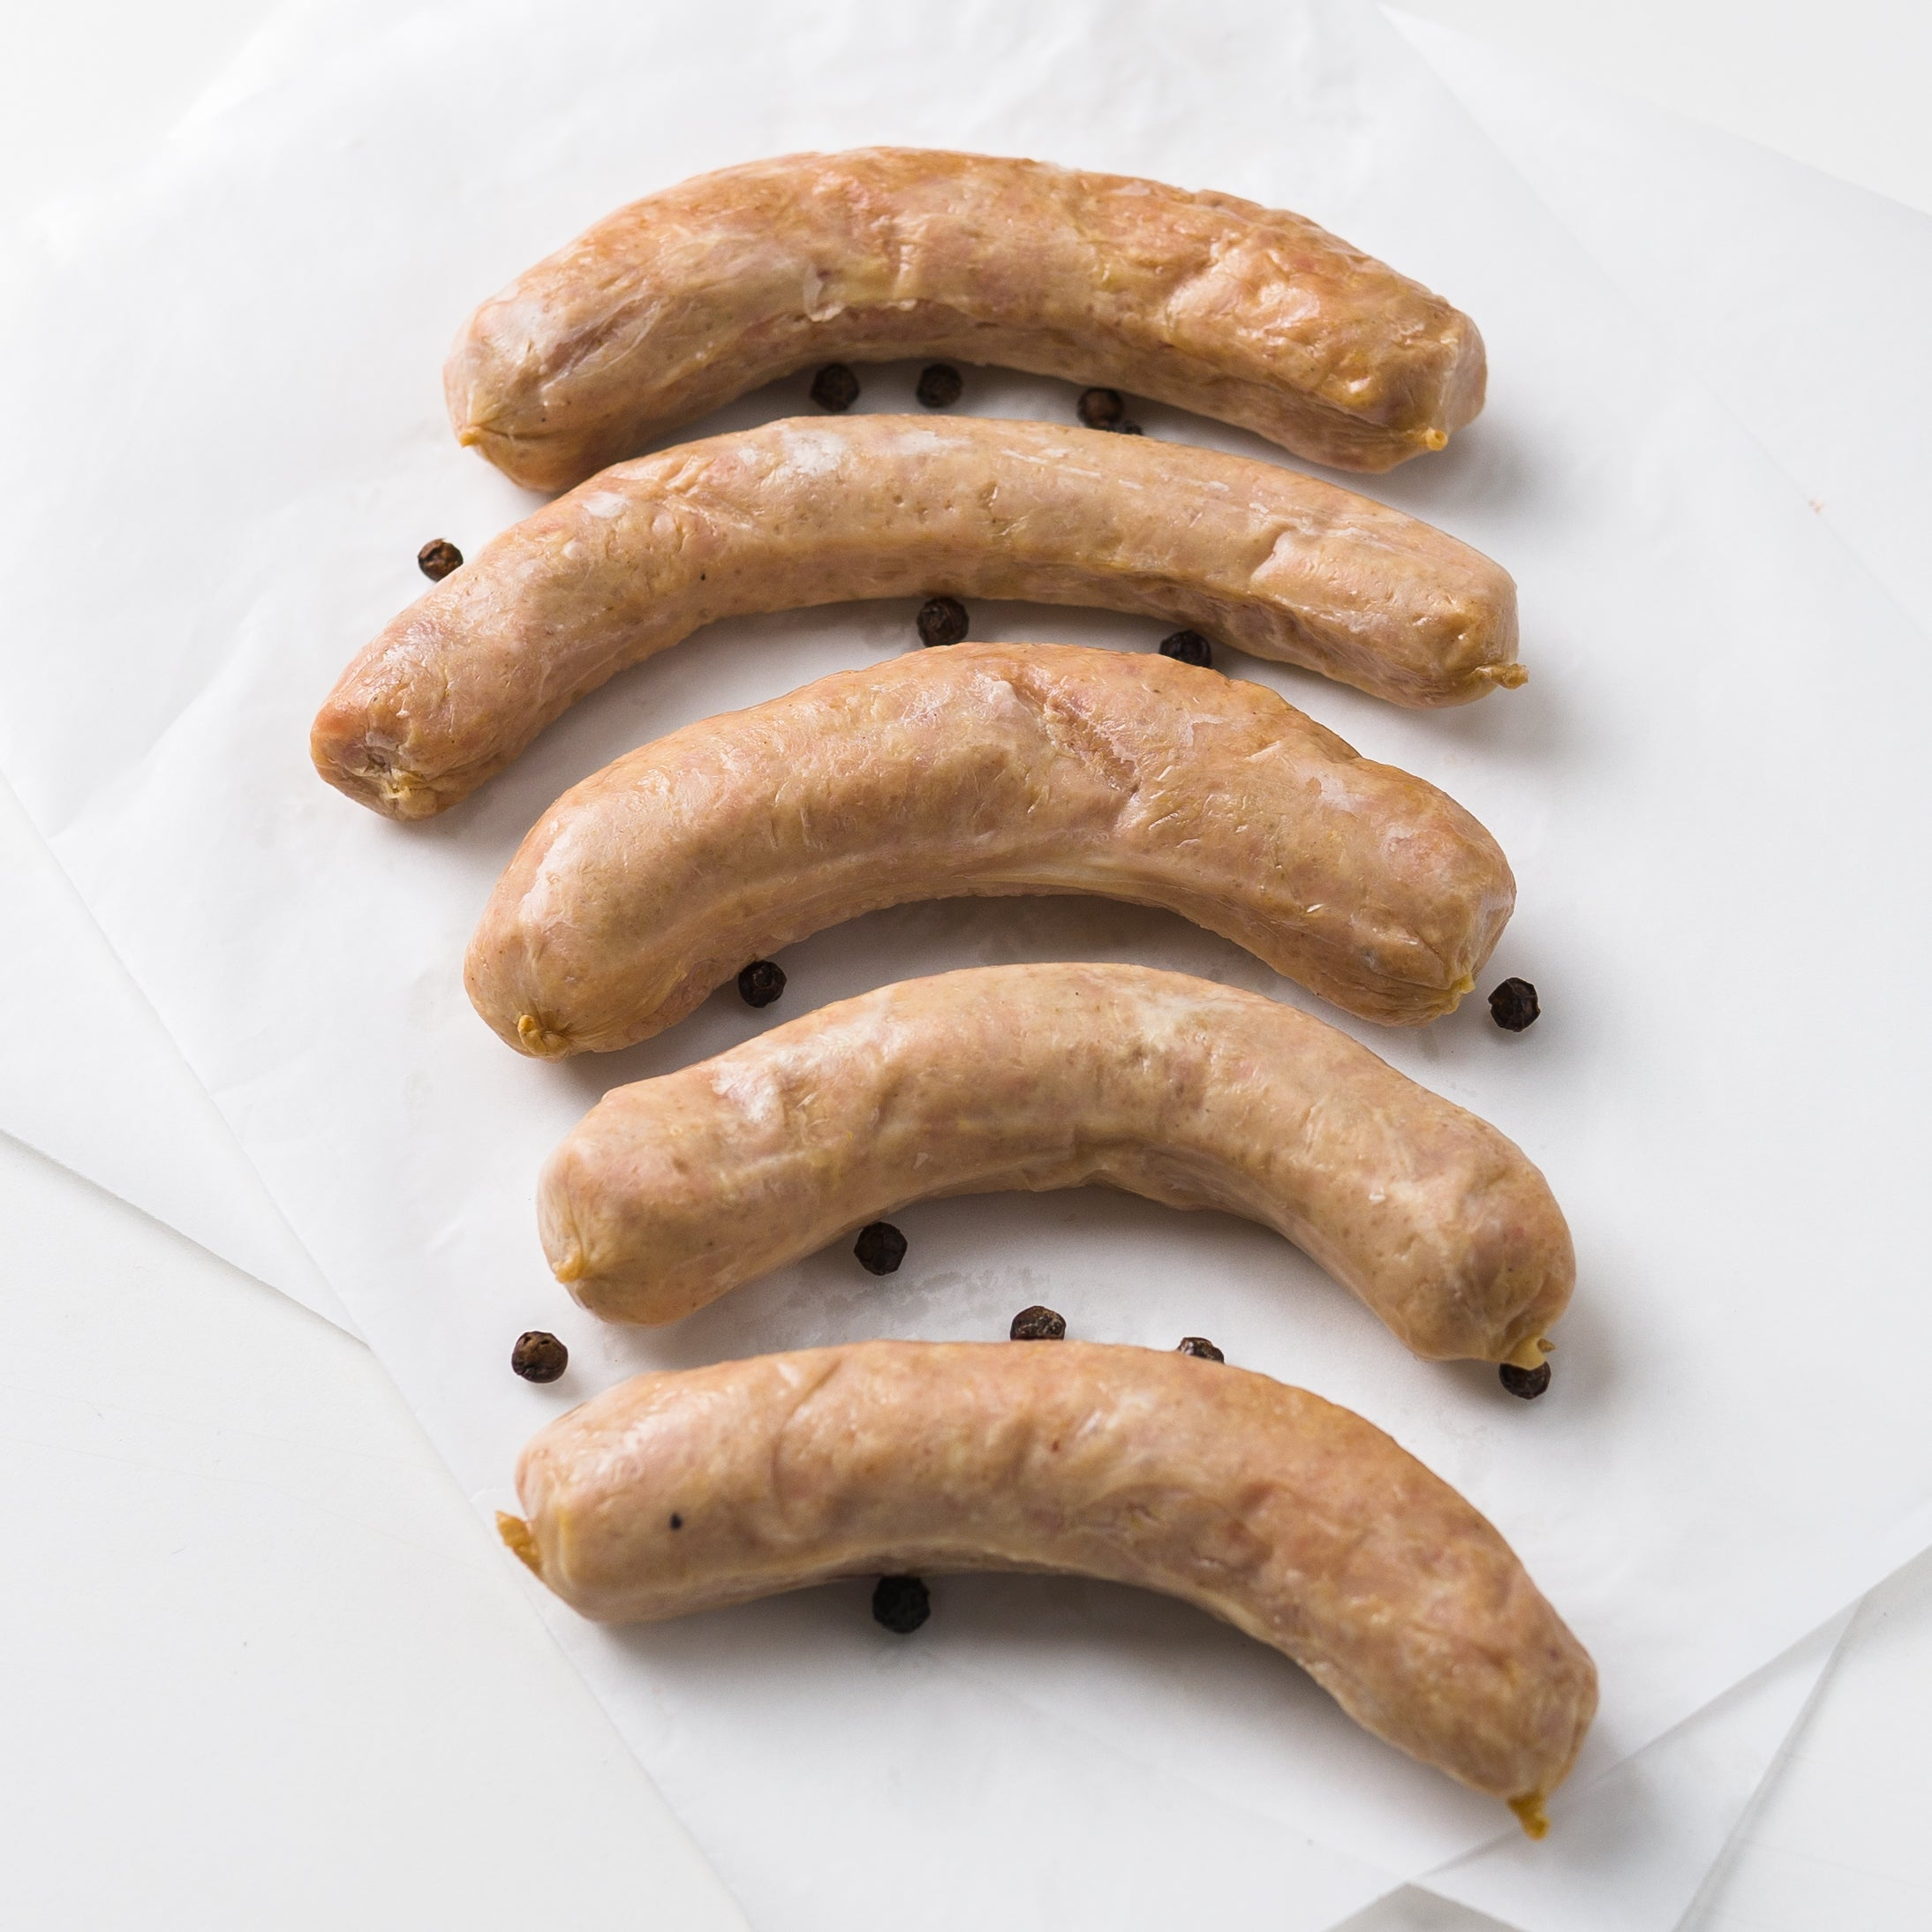 Black Pepper Garlic Smoked Pork Sausage